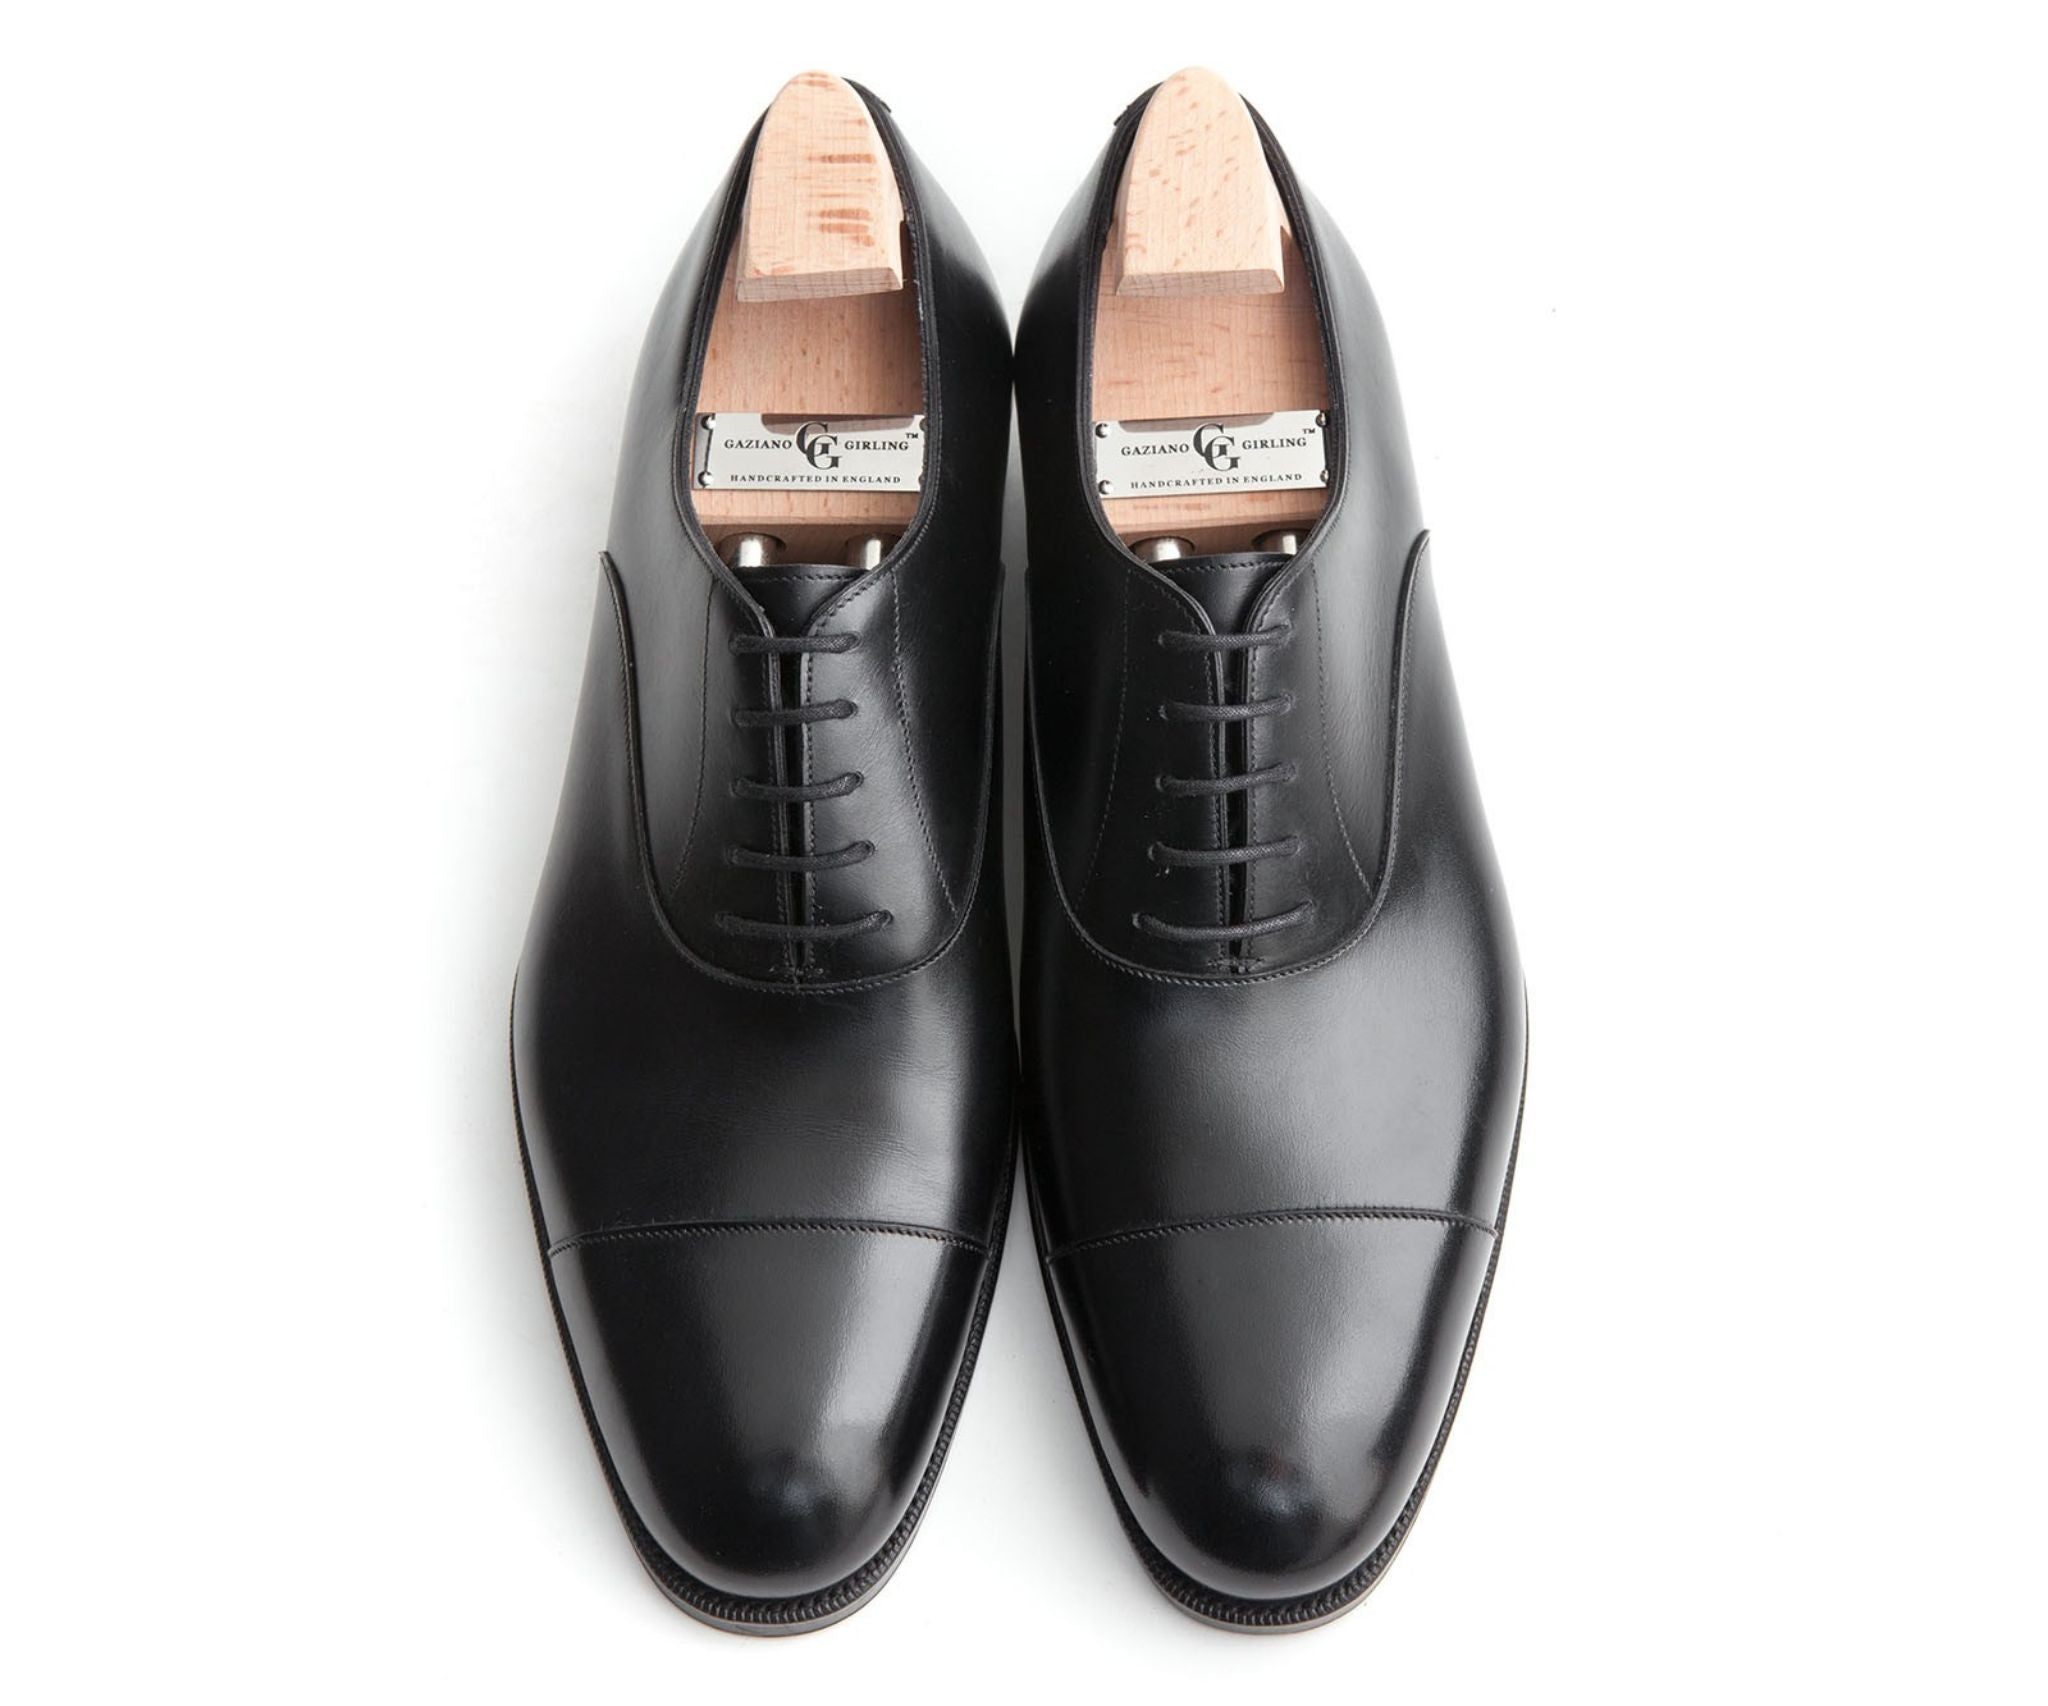 Black cap toe oxfords - Gaziano & Girling